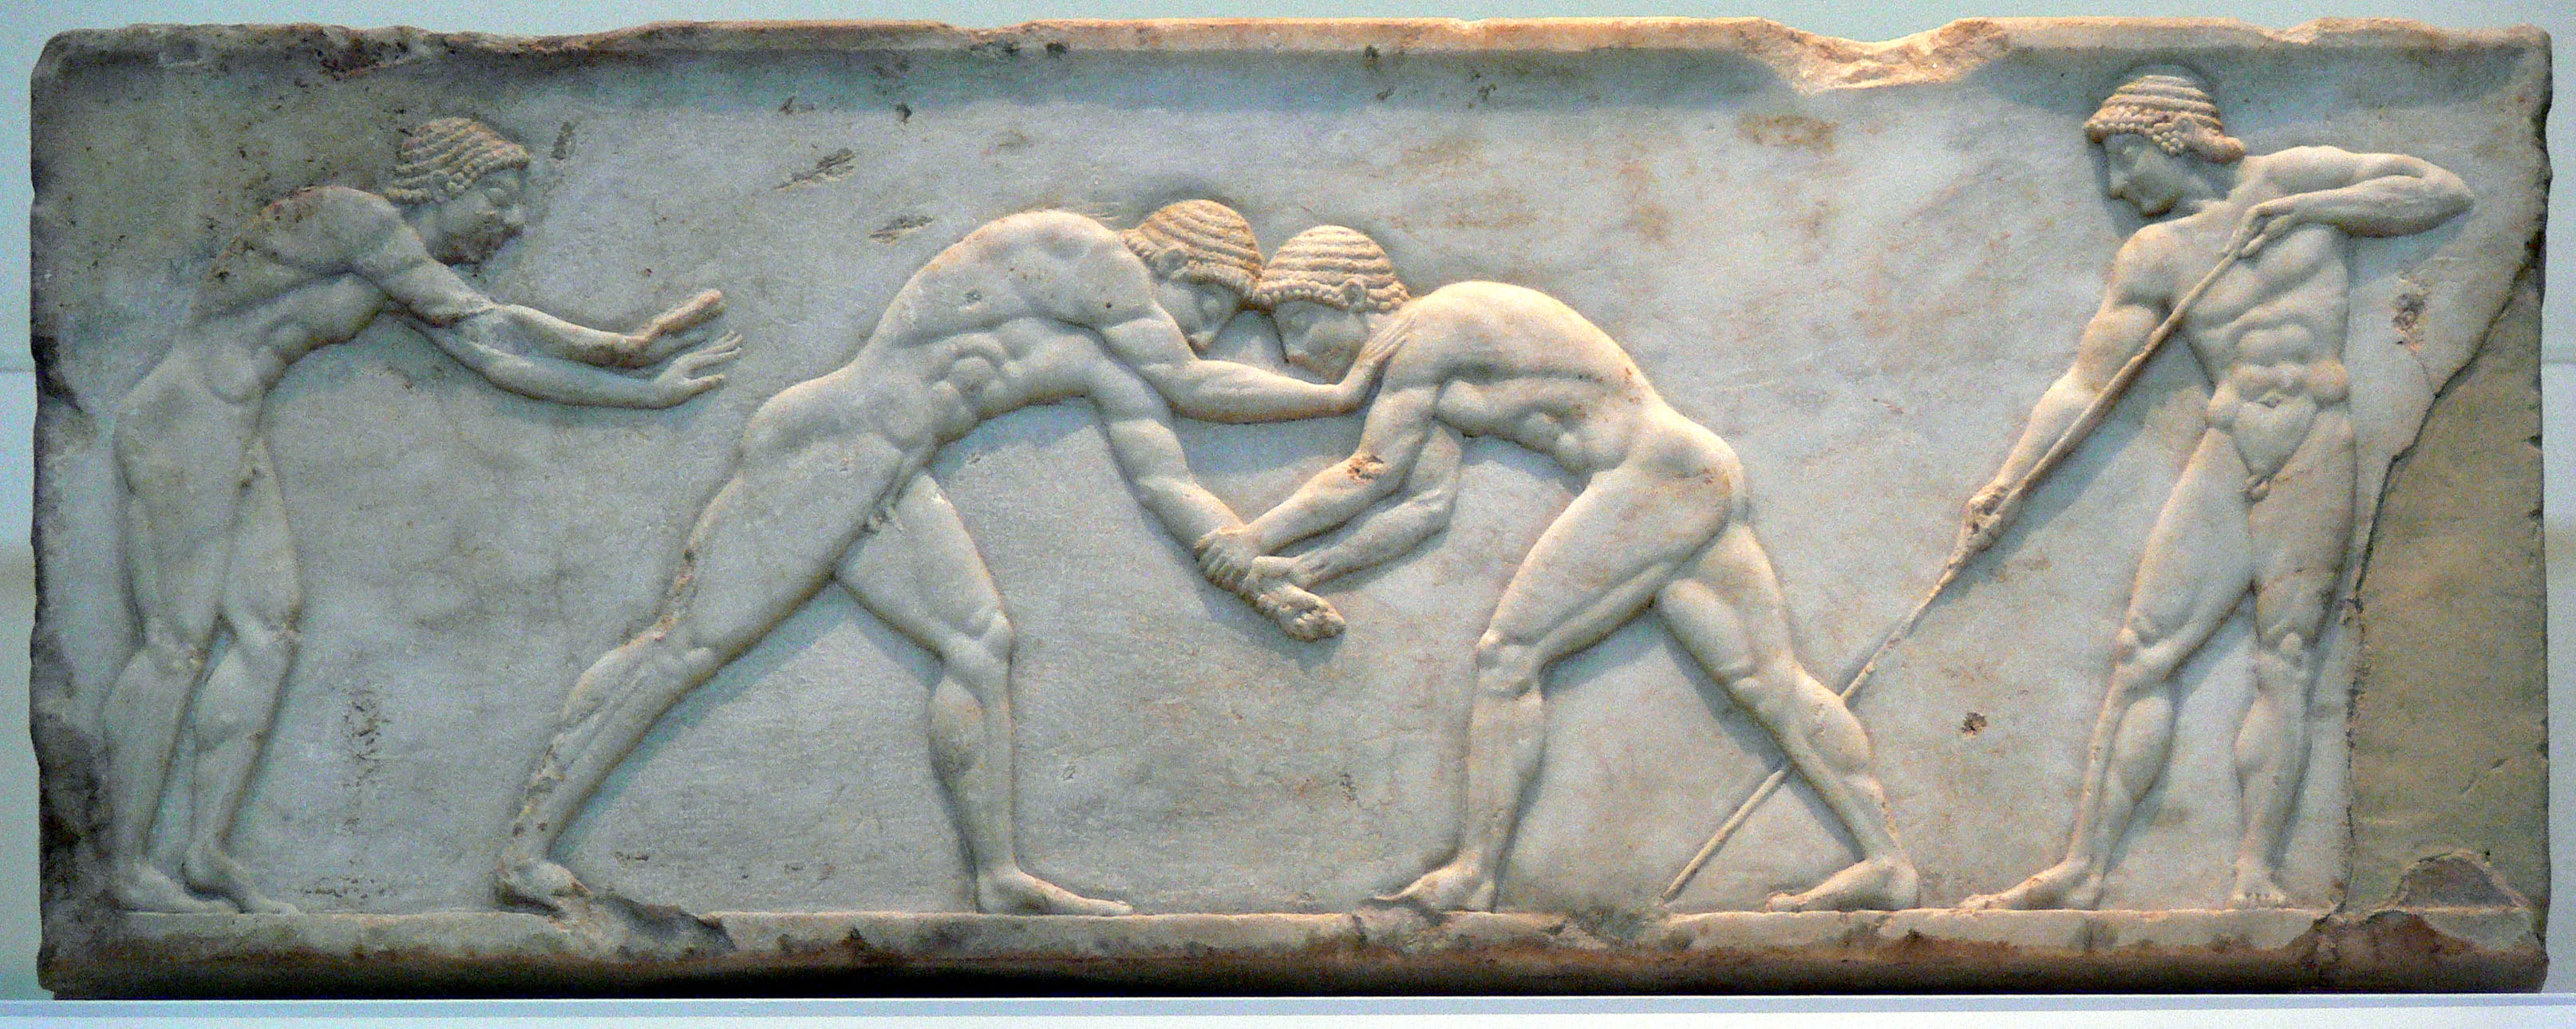 How Did The Ancient Greece Olympic Games Start And